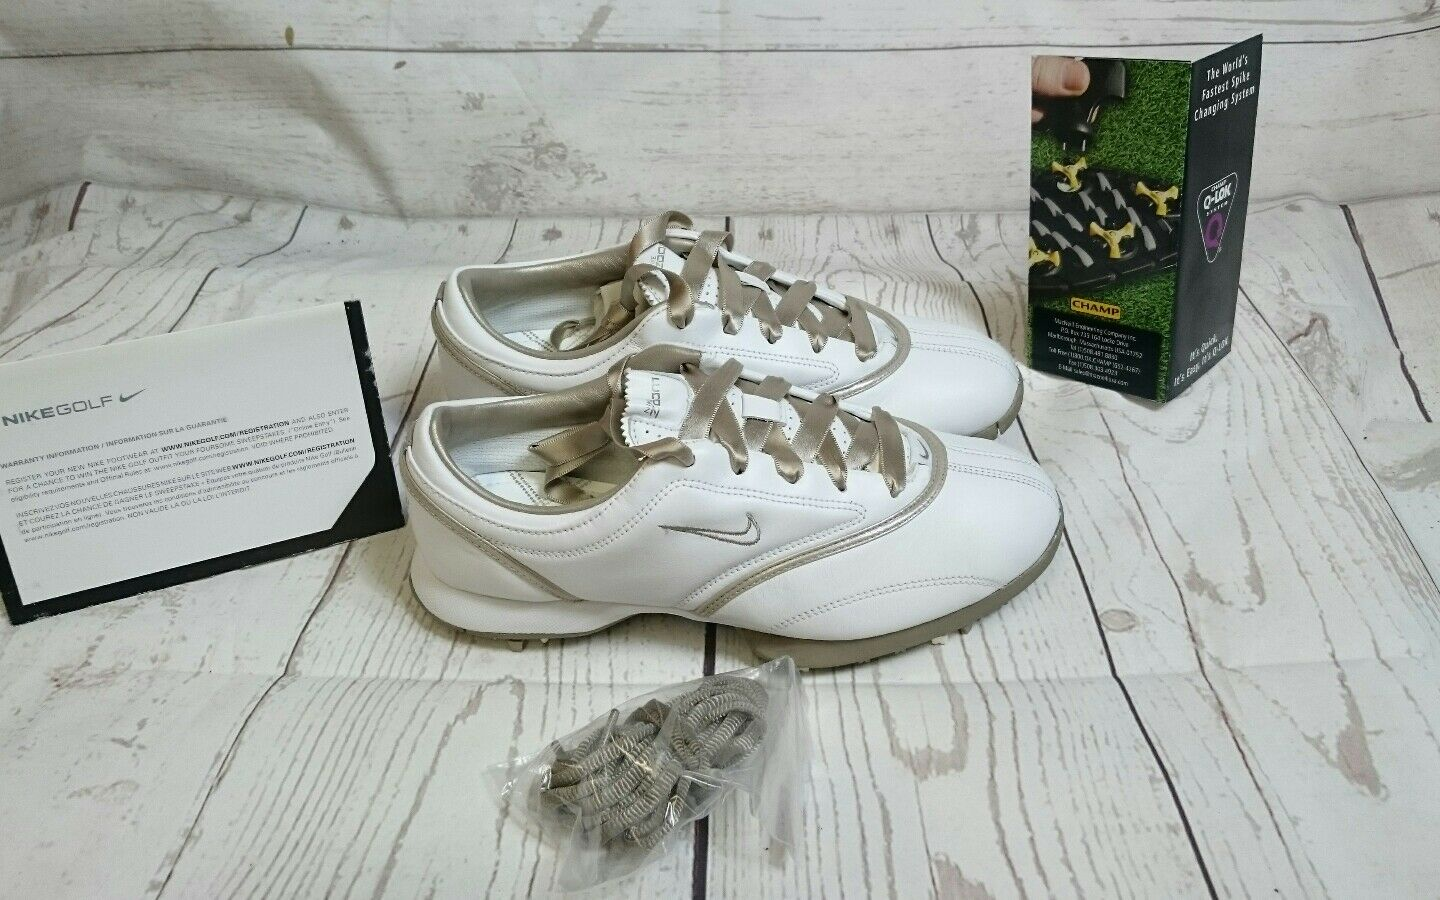 bee8256b8c8 ... New Women s Nike Air Zoom Gem Gem Gem leather White Golf Shoes Size 9  msrp  155 ...